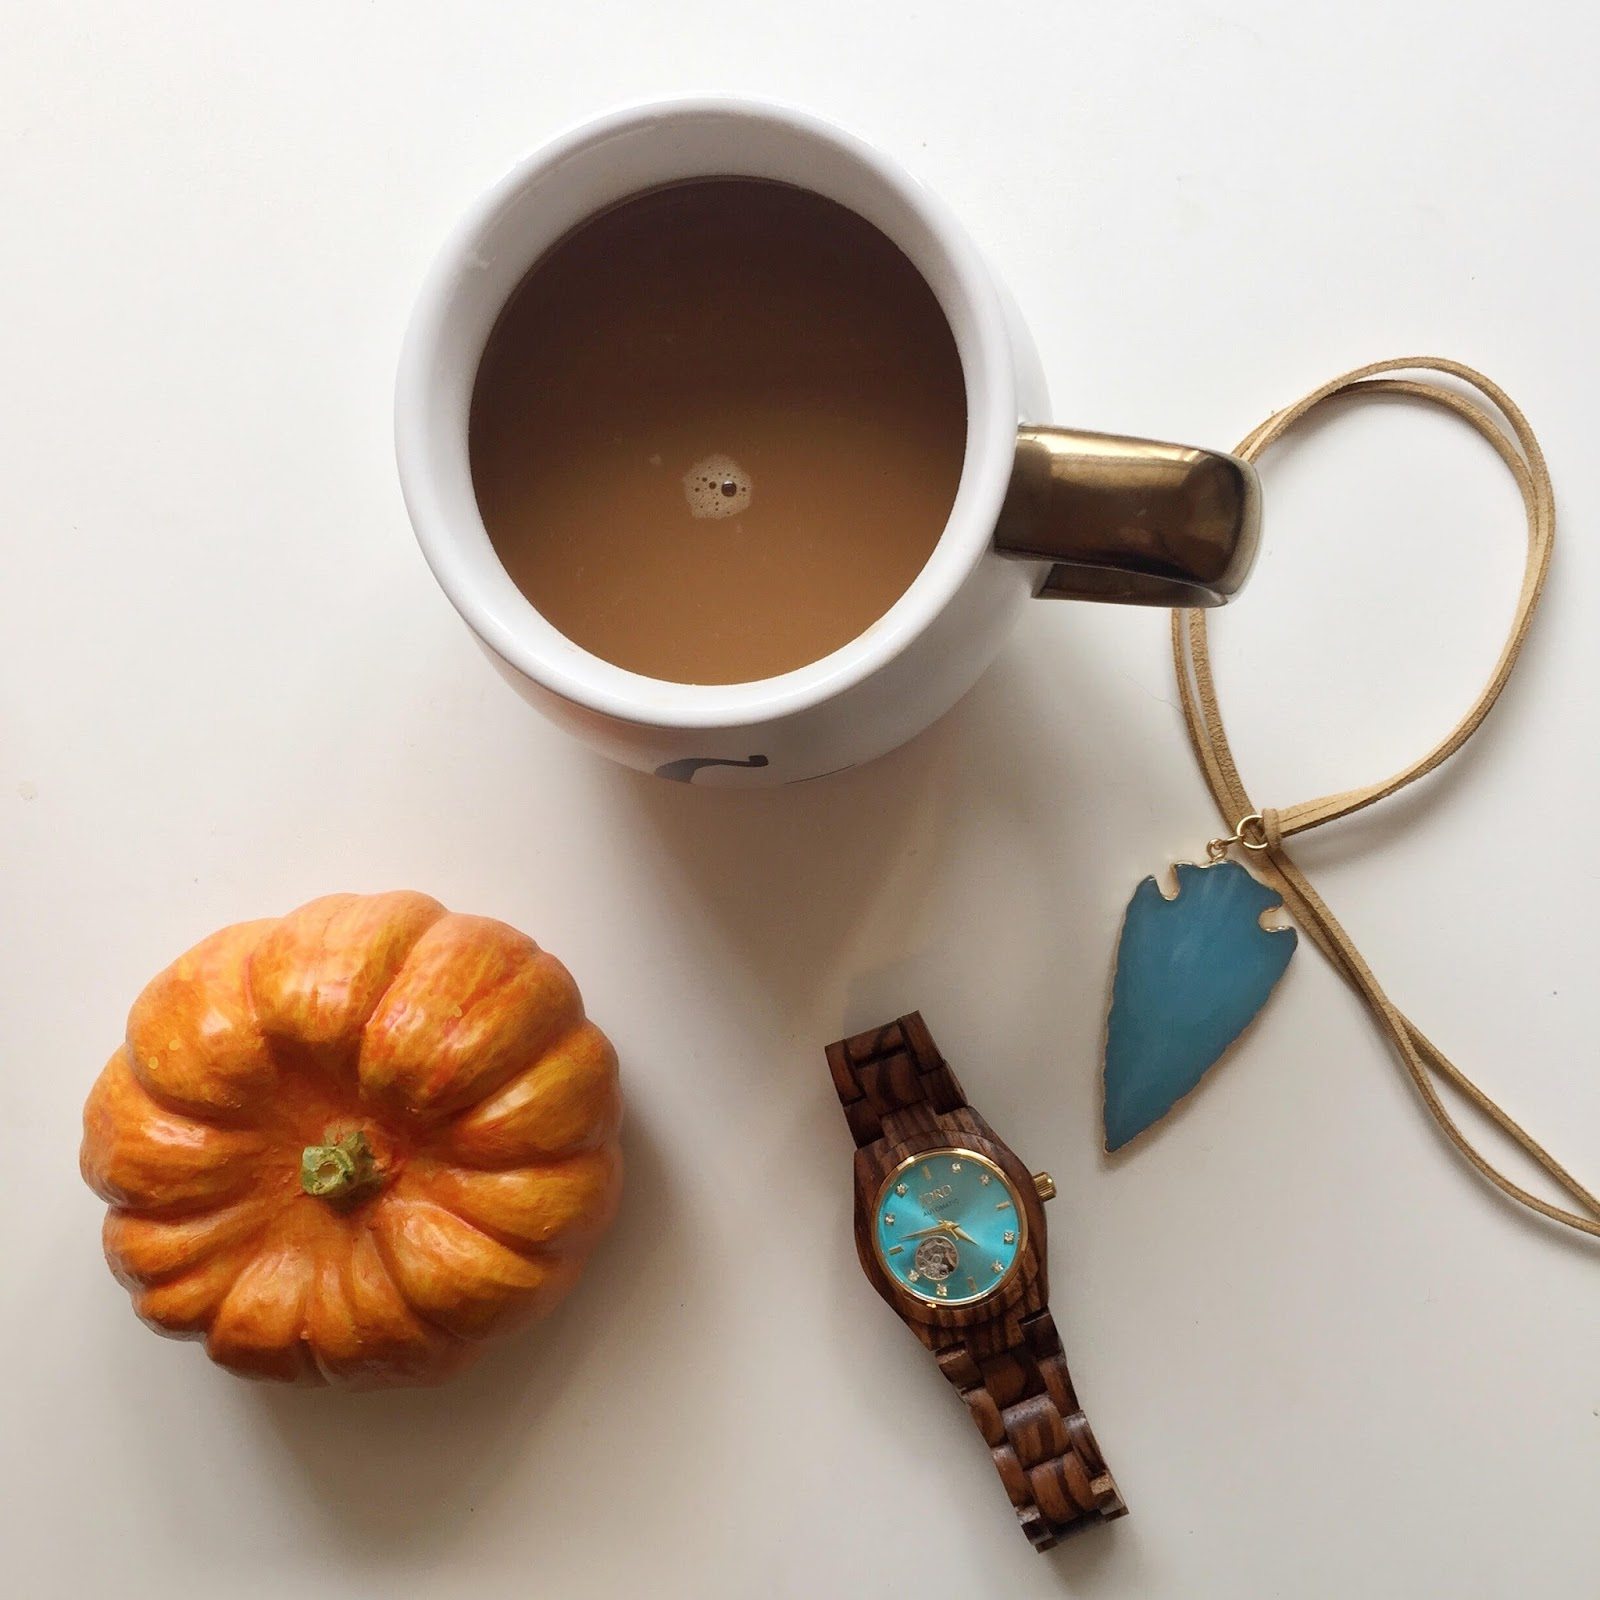 JORD zebrawood and turquoise watch